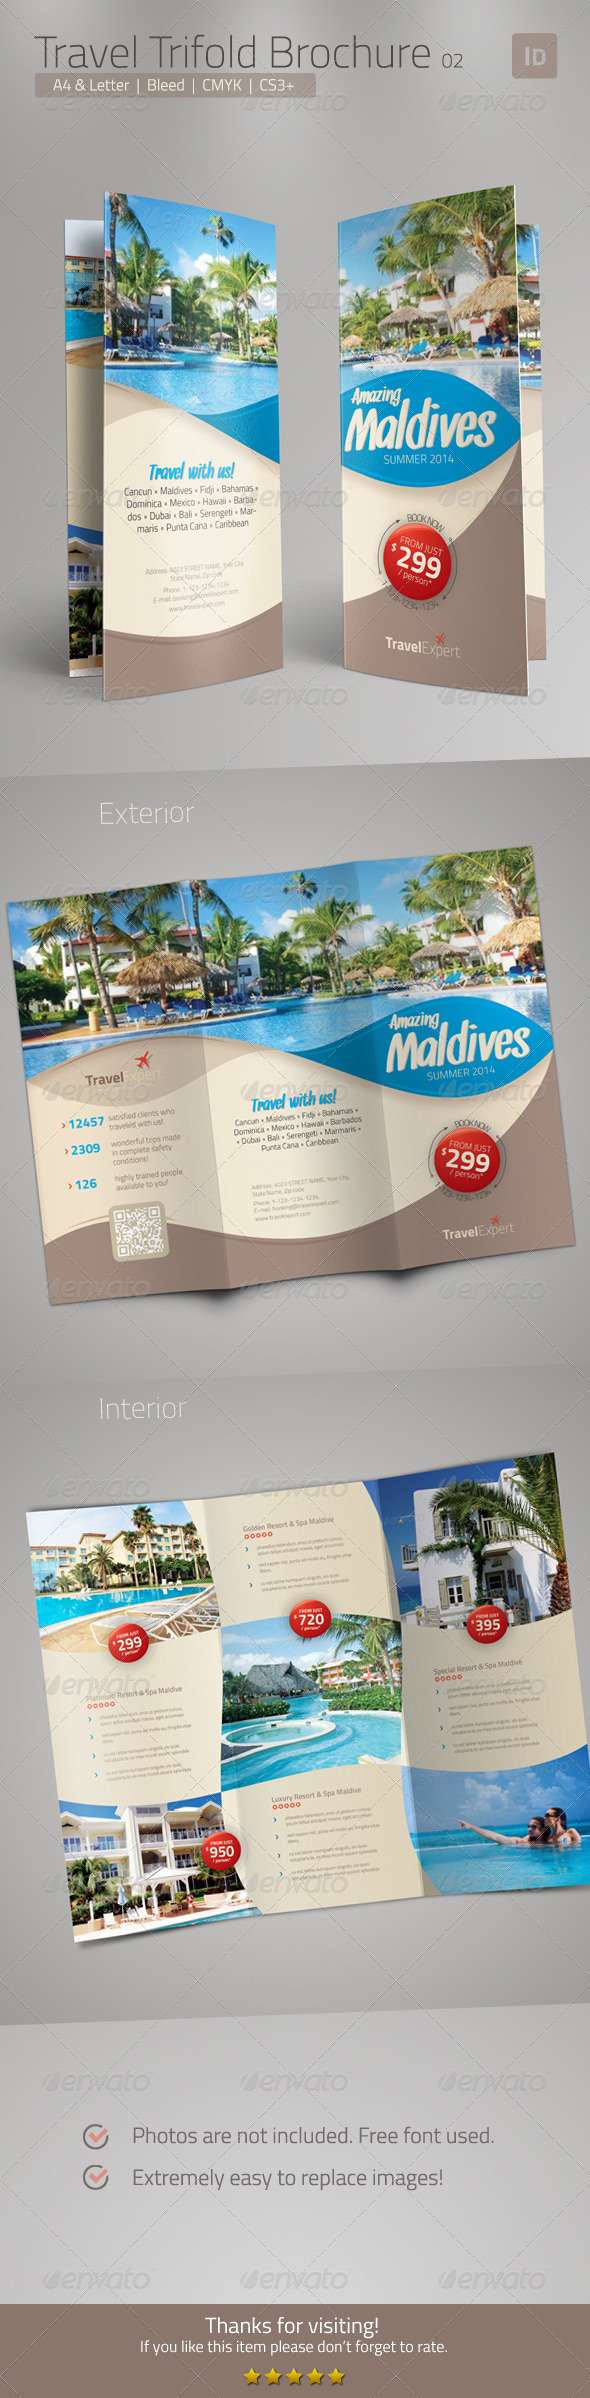 GraphicRiver Travel Brochure Trifold 6800019